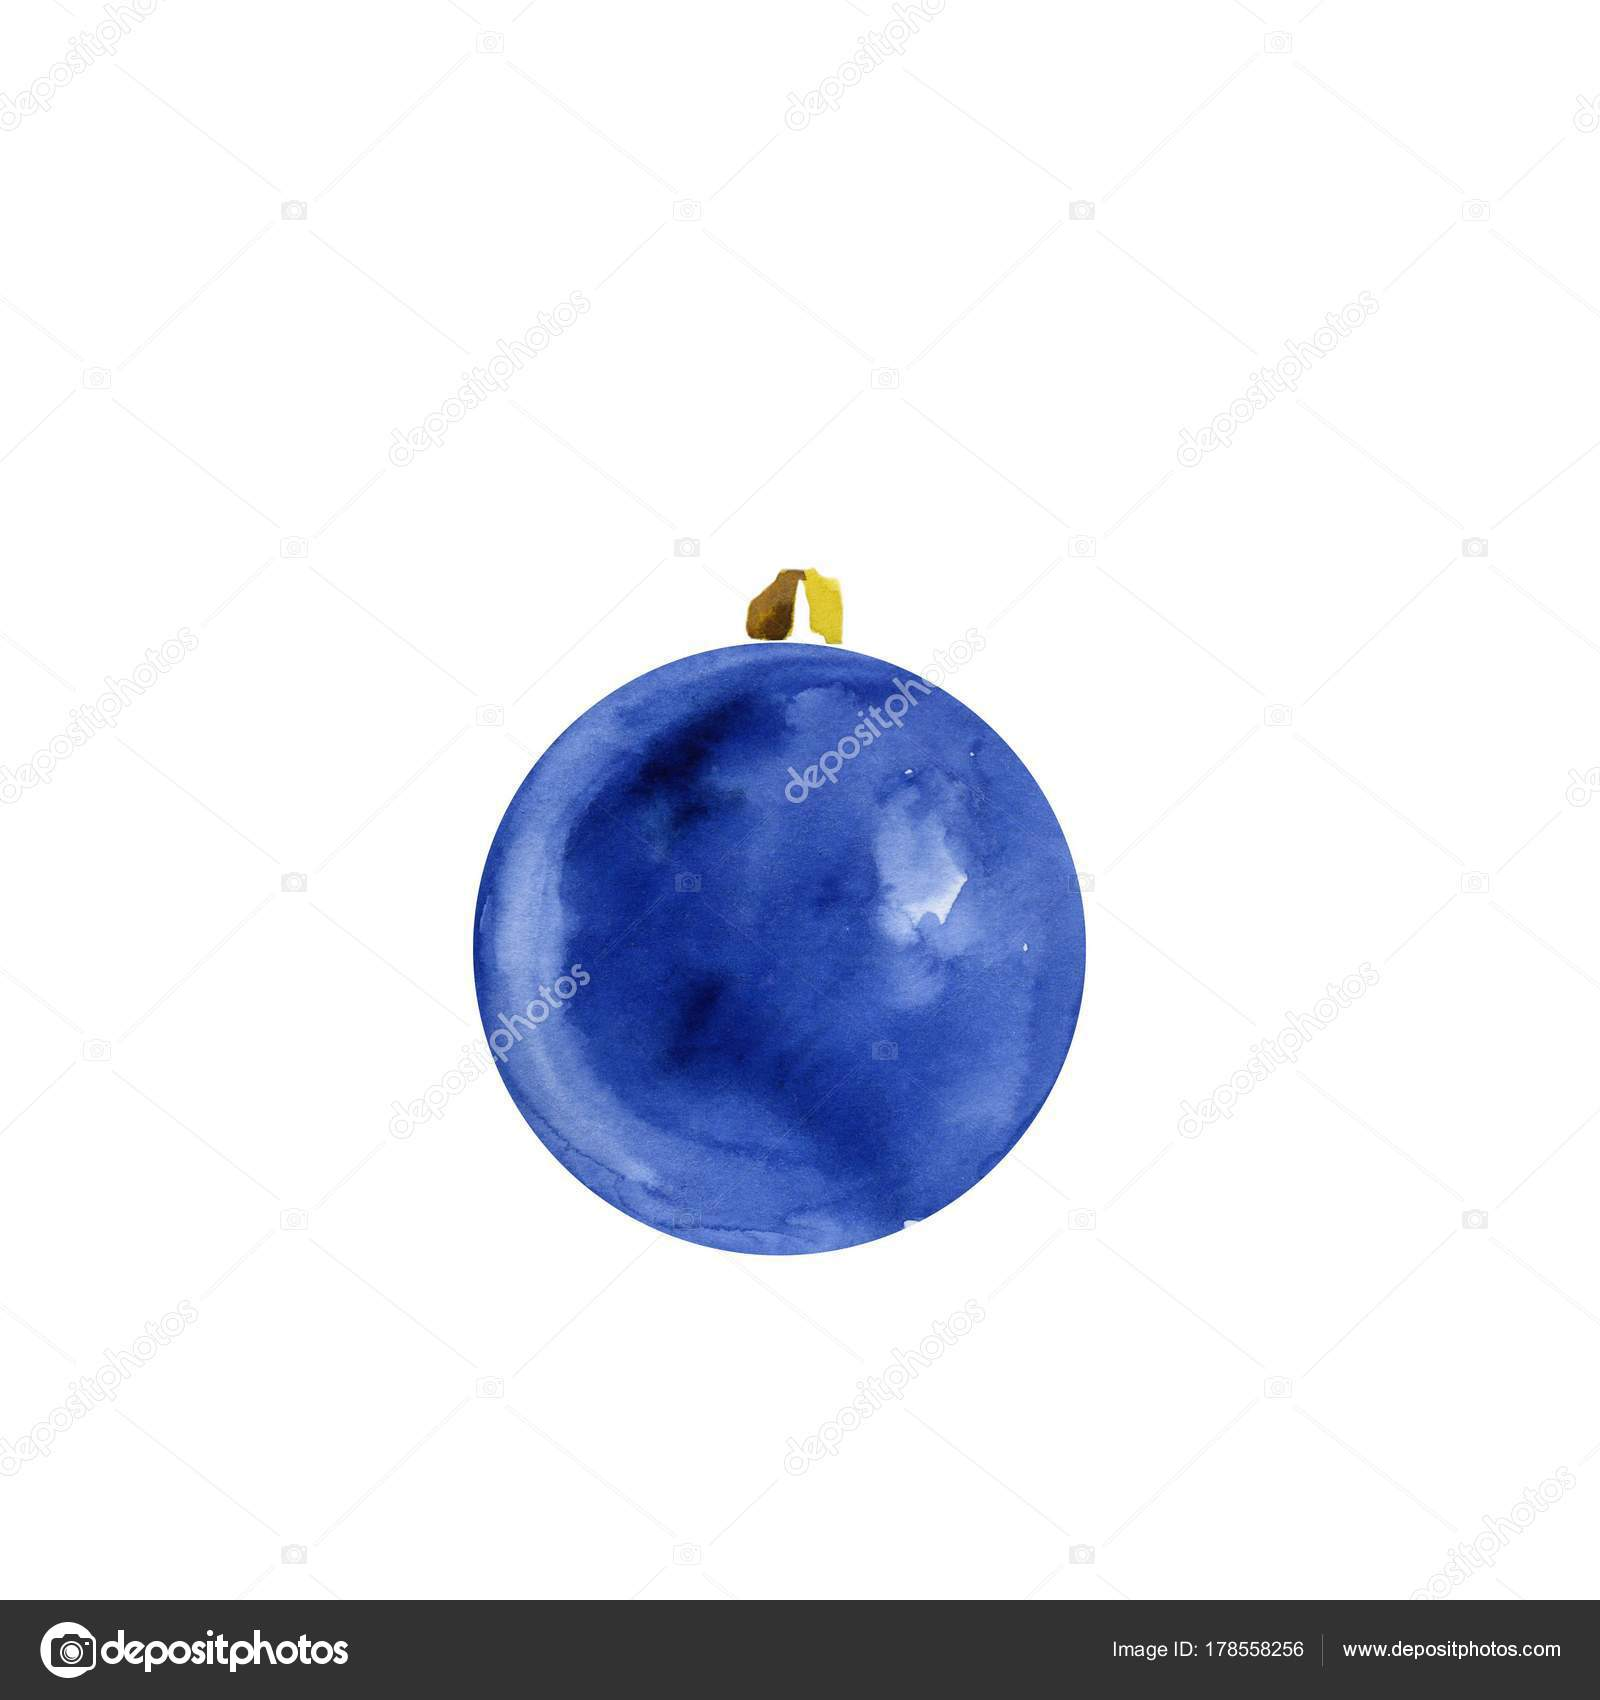 christmas decorations on christmas tree of watercolor stains blots watercolor dark blue christmas ball